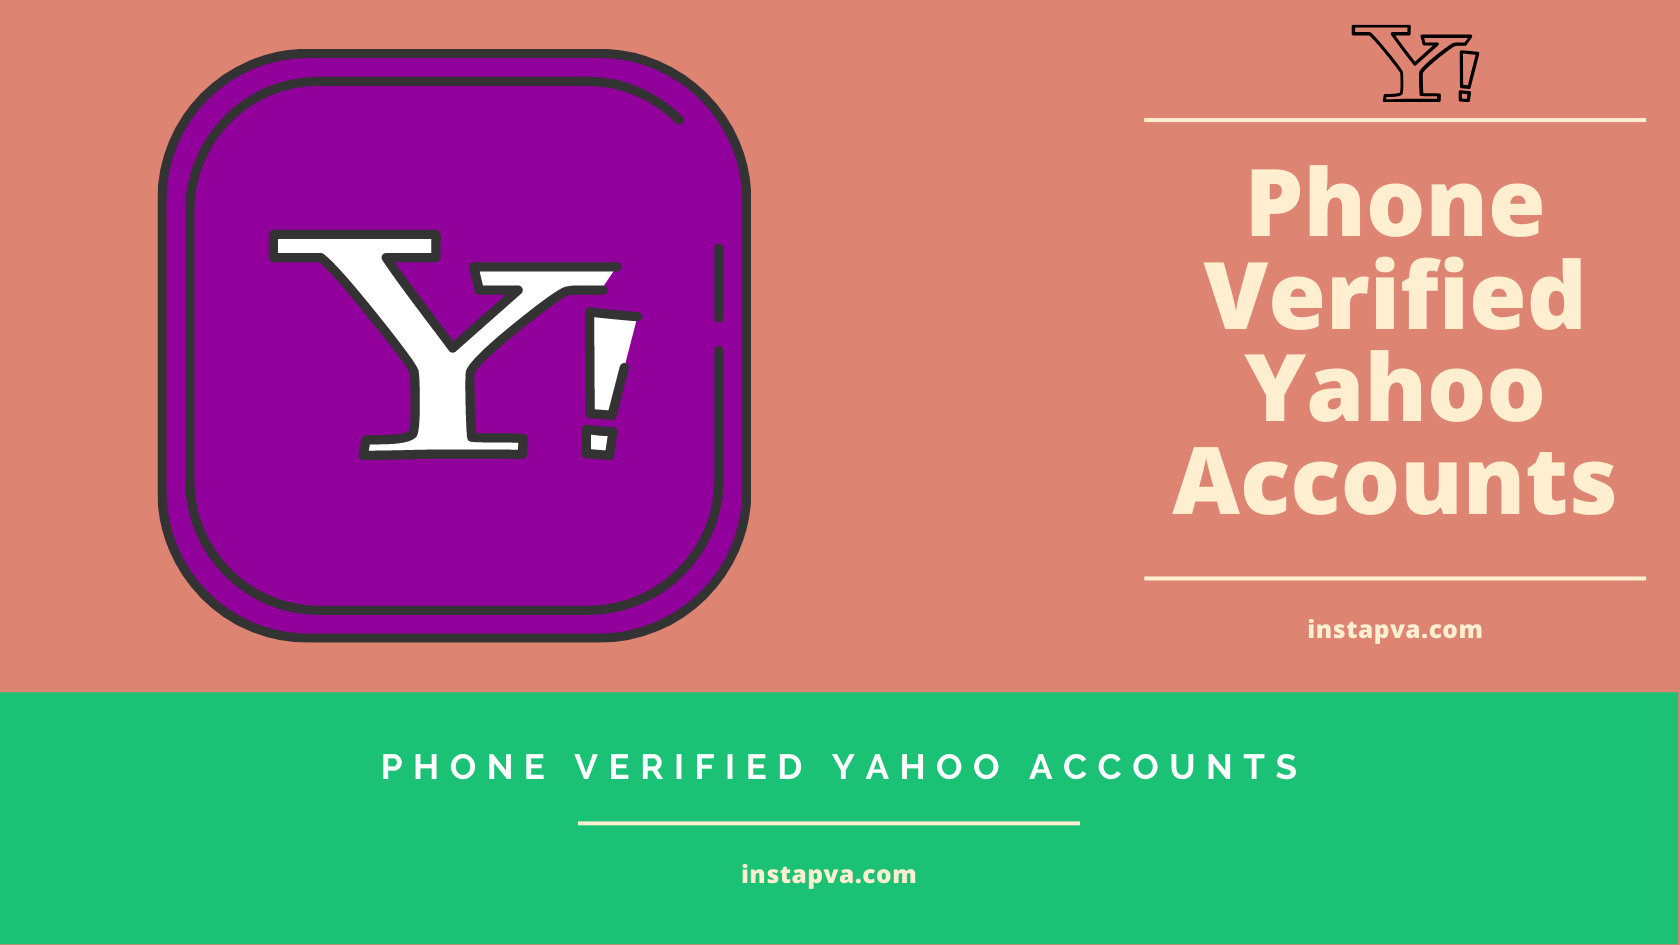 Phone Verified Yahoo Accounts